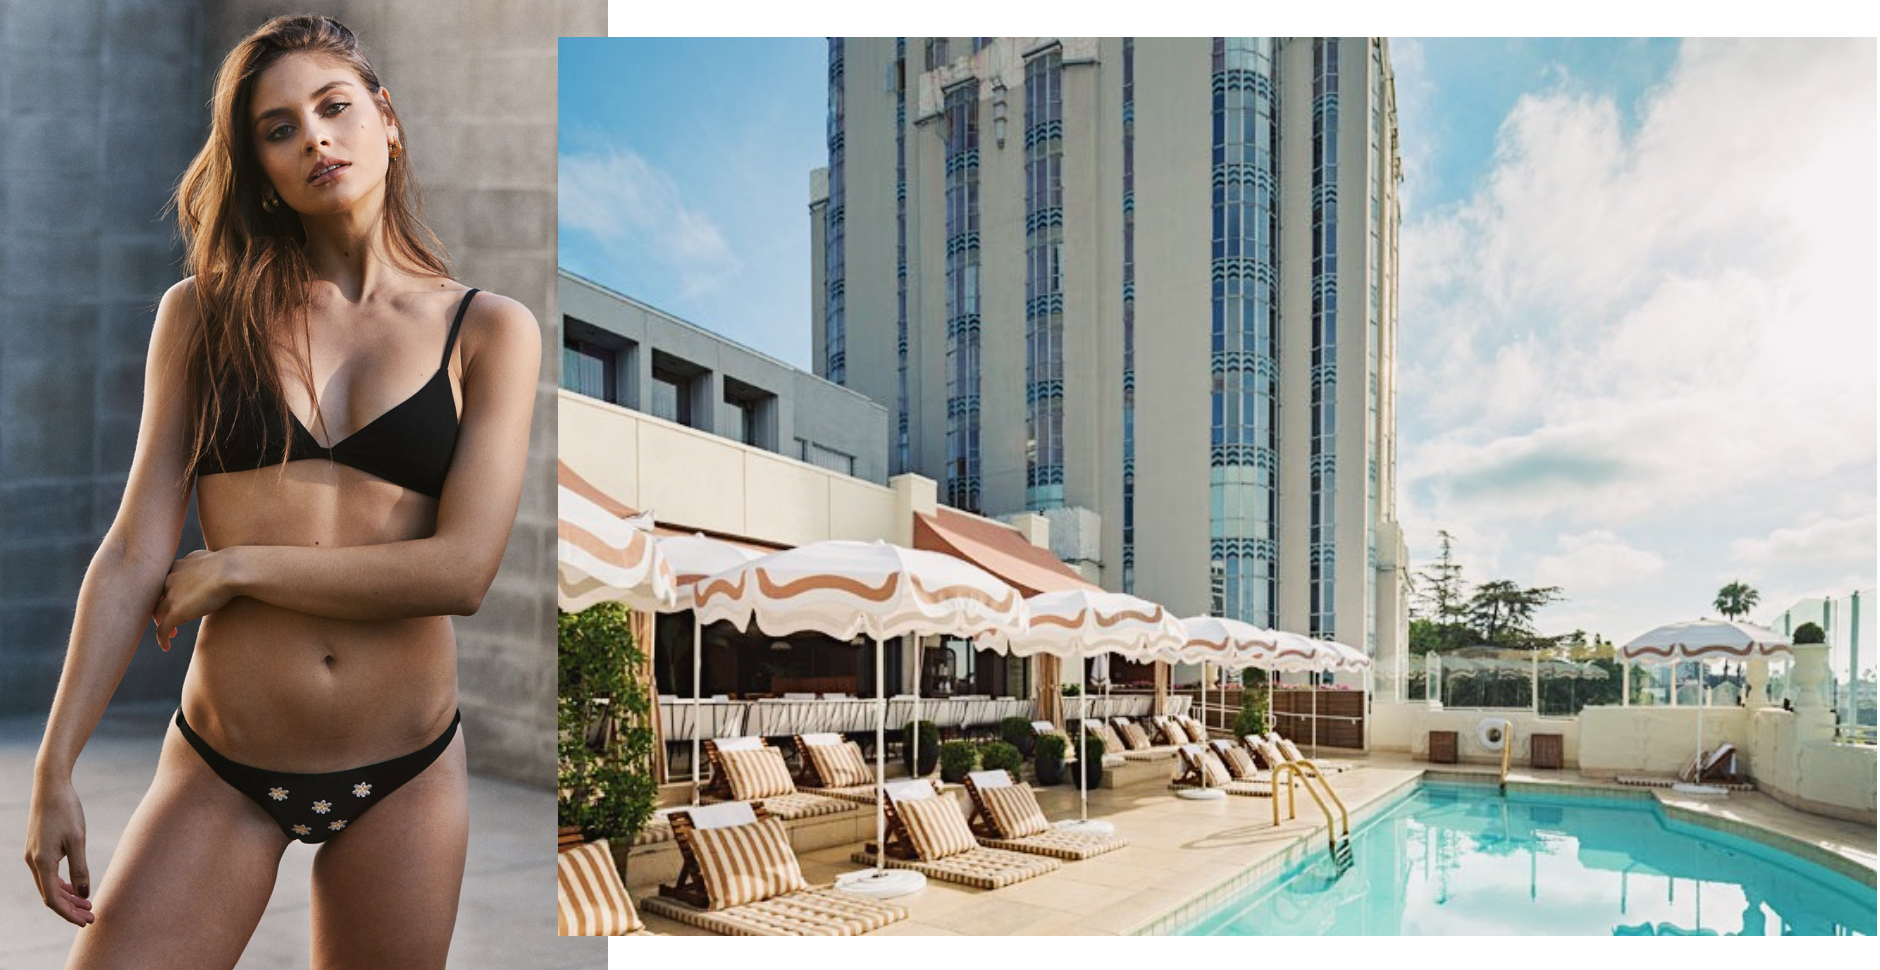 Photos (L-R): Anemone // The Sunset Tower